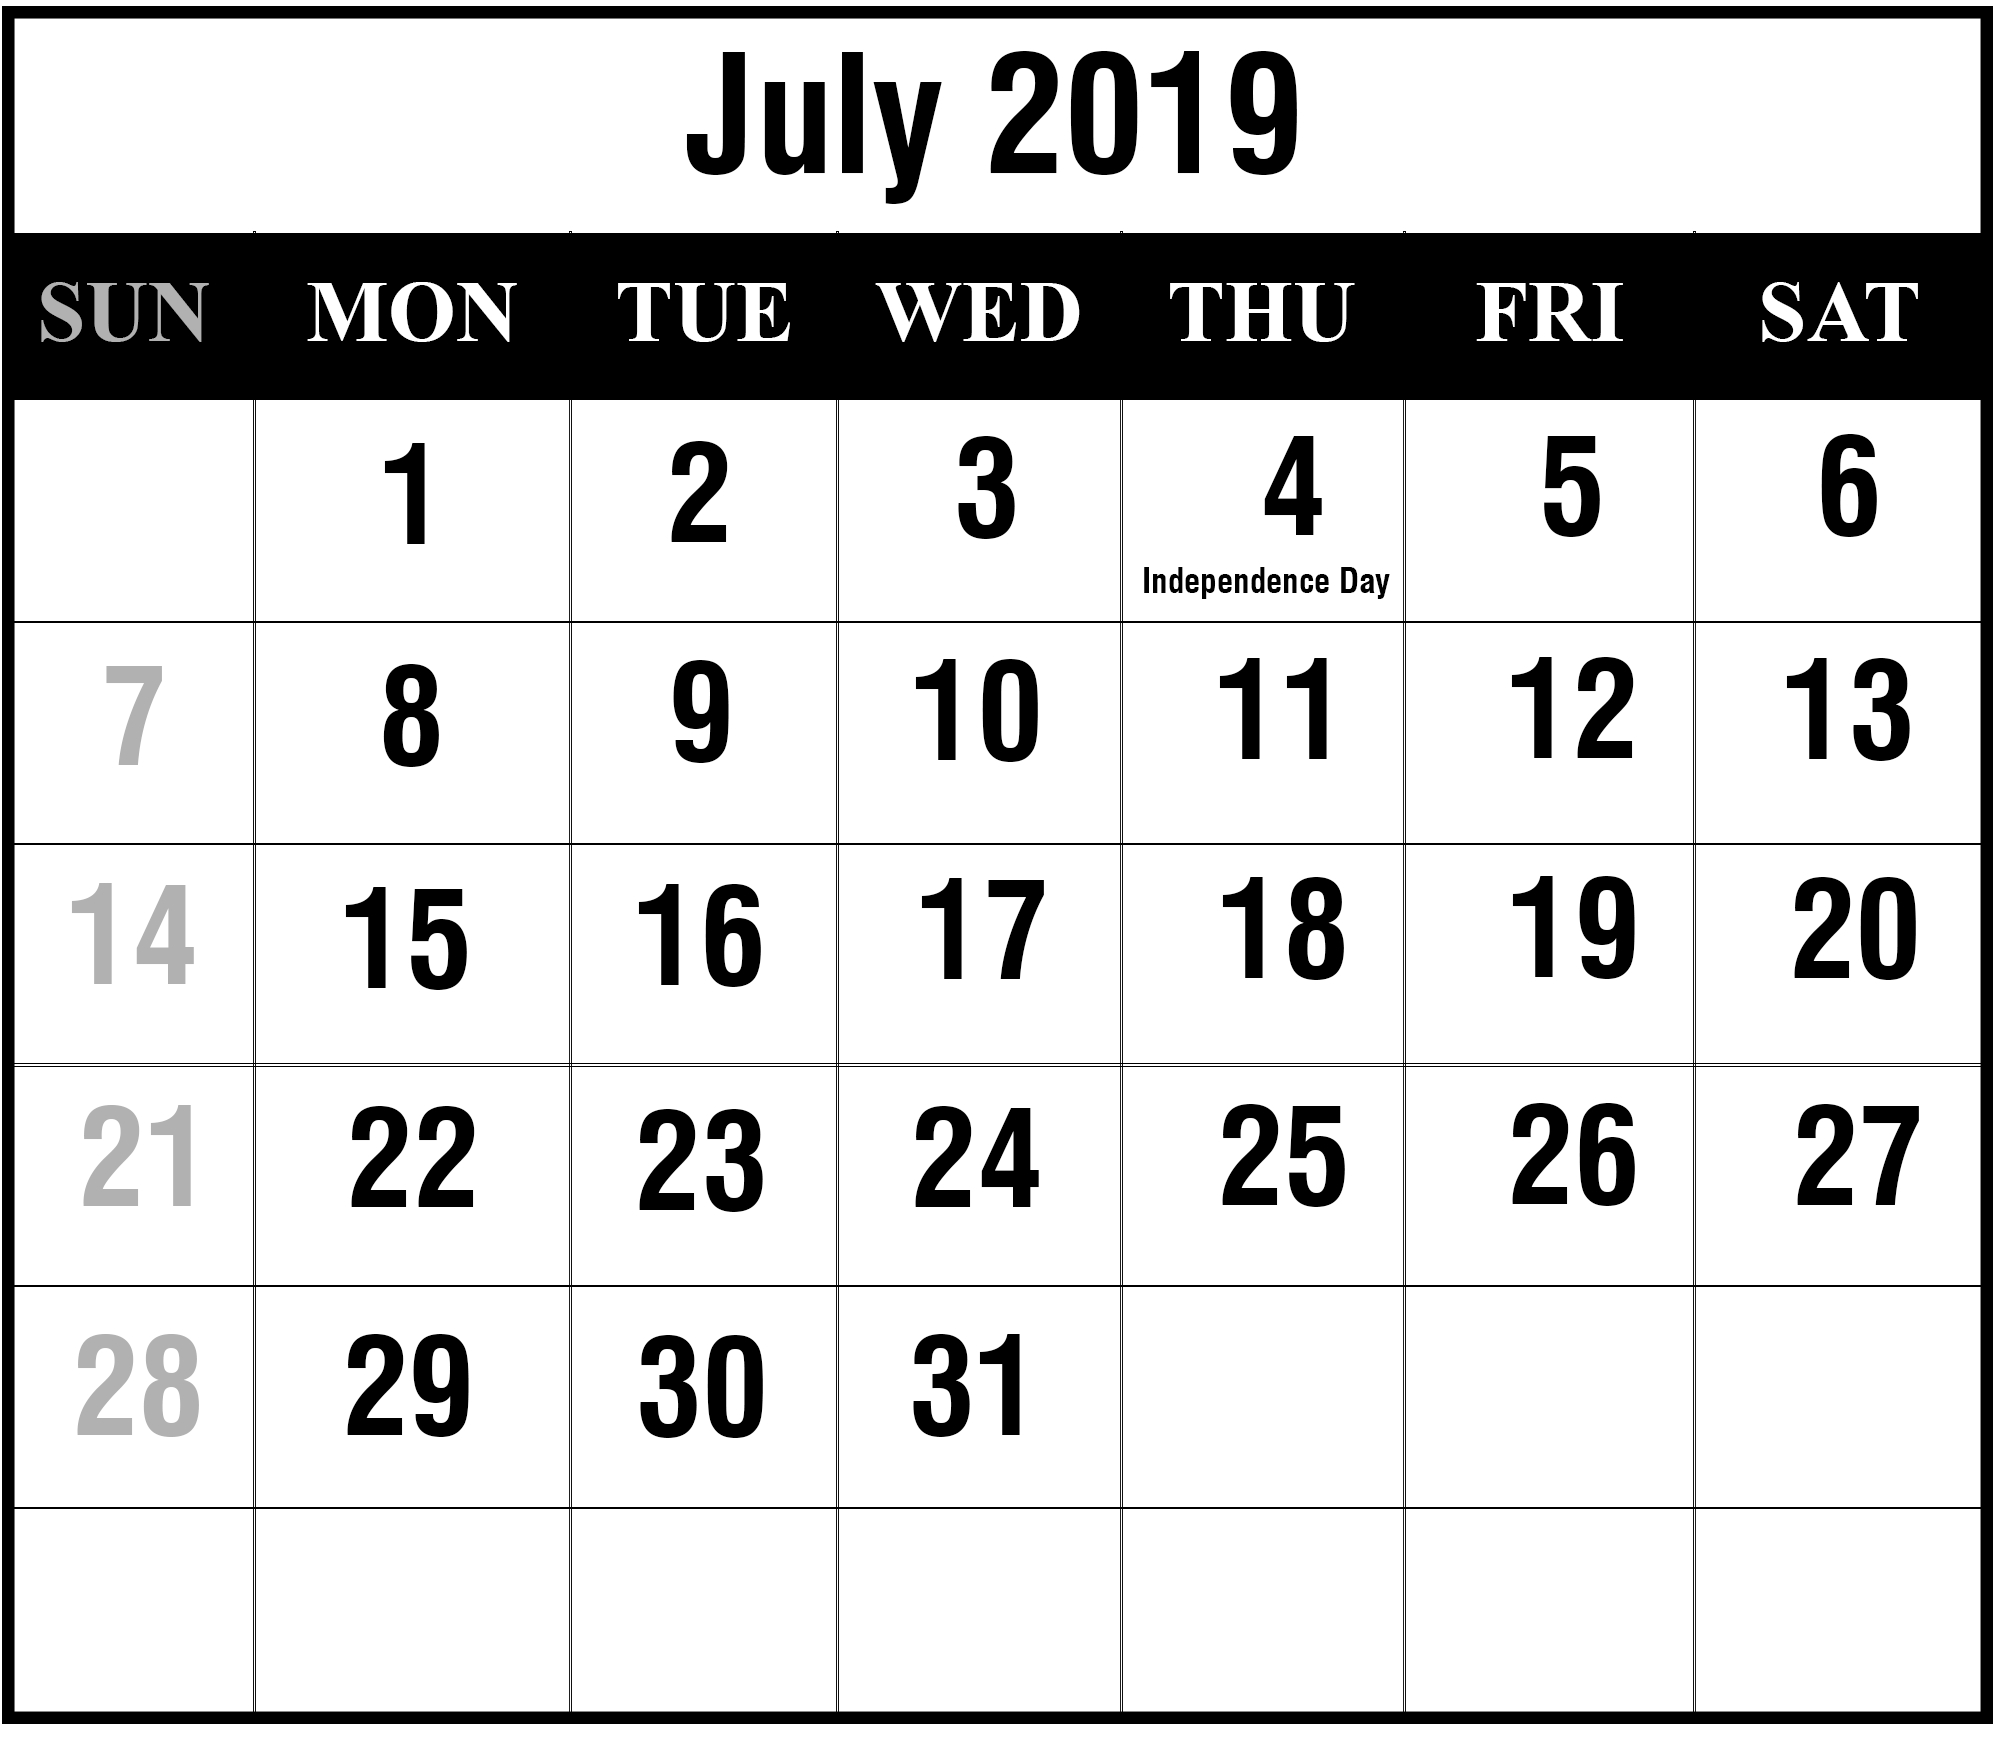 July 2019 Calendar Printable | July Blank Calendar Template July 4 2019 Calendar